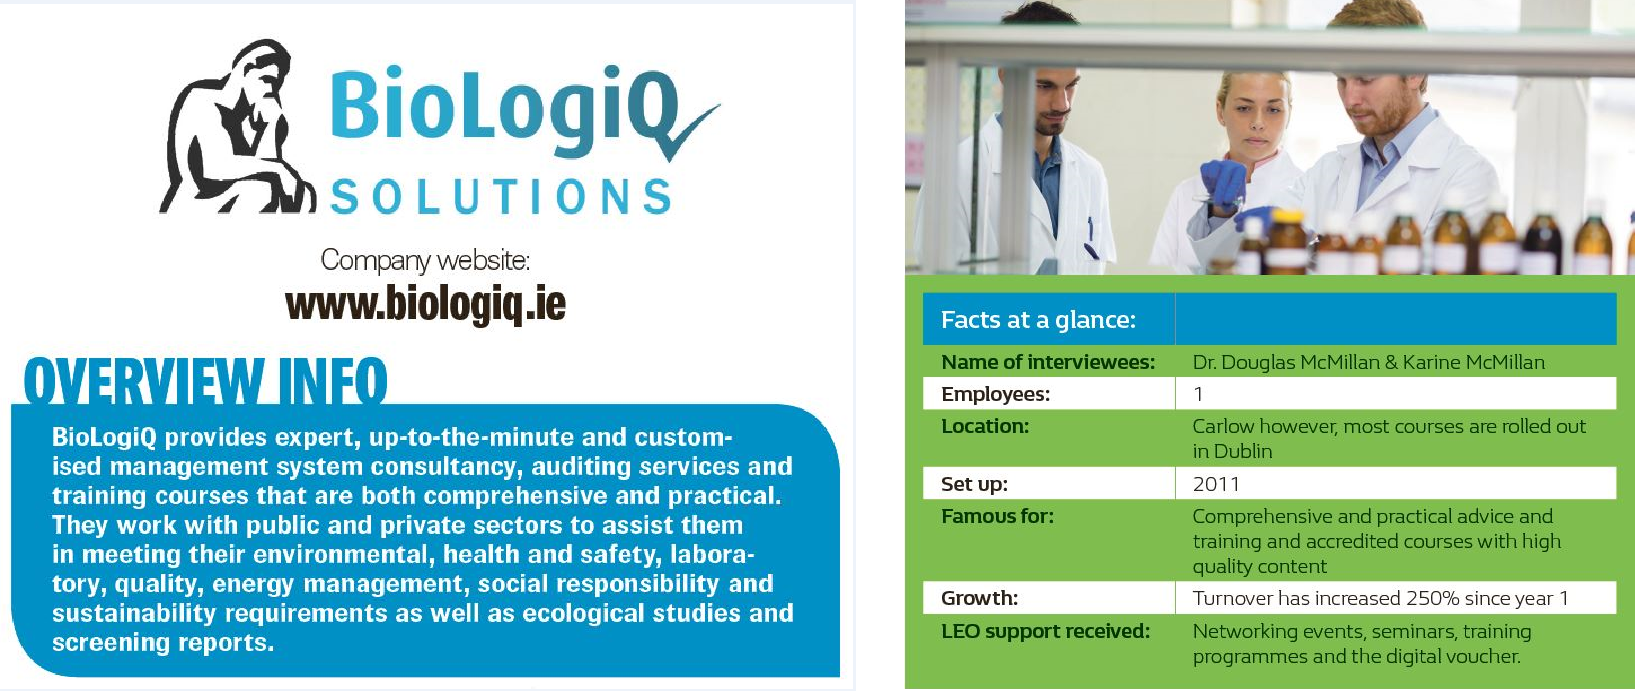 BioLogiq Title and Facts